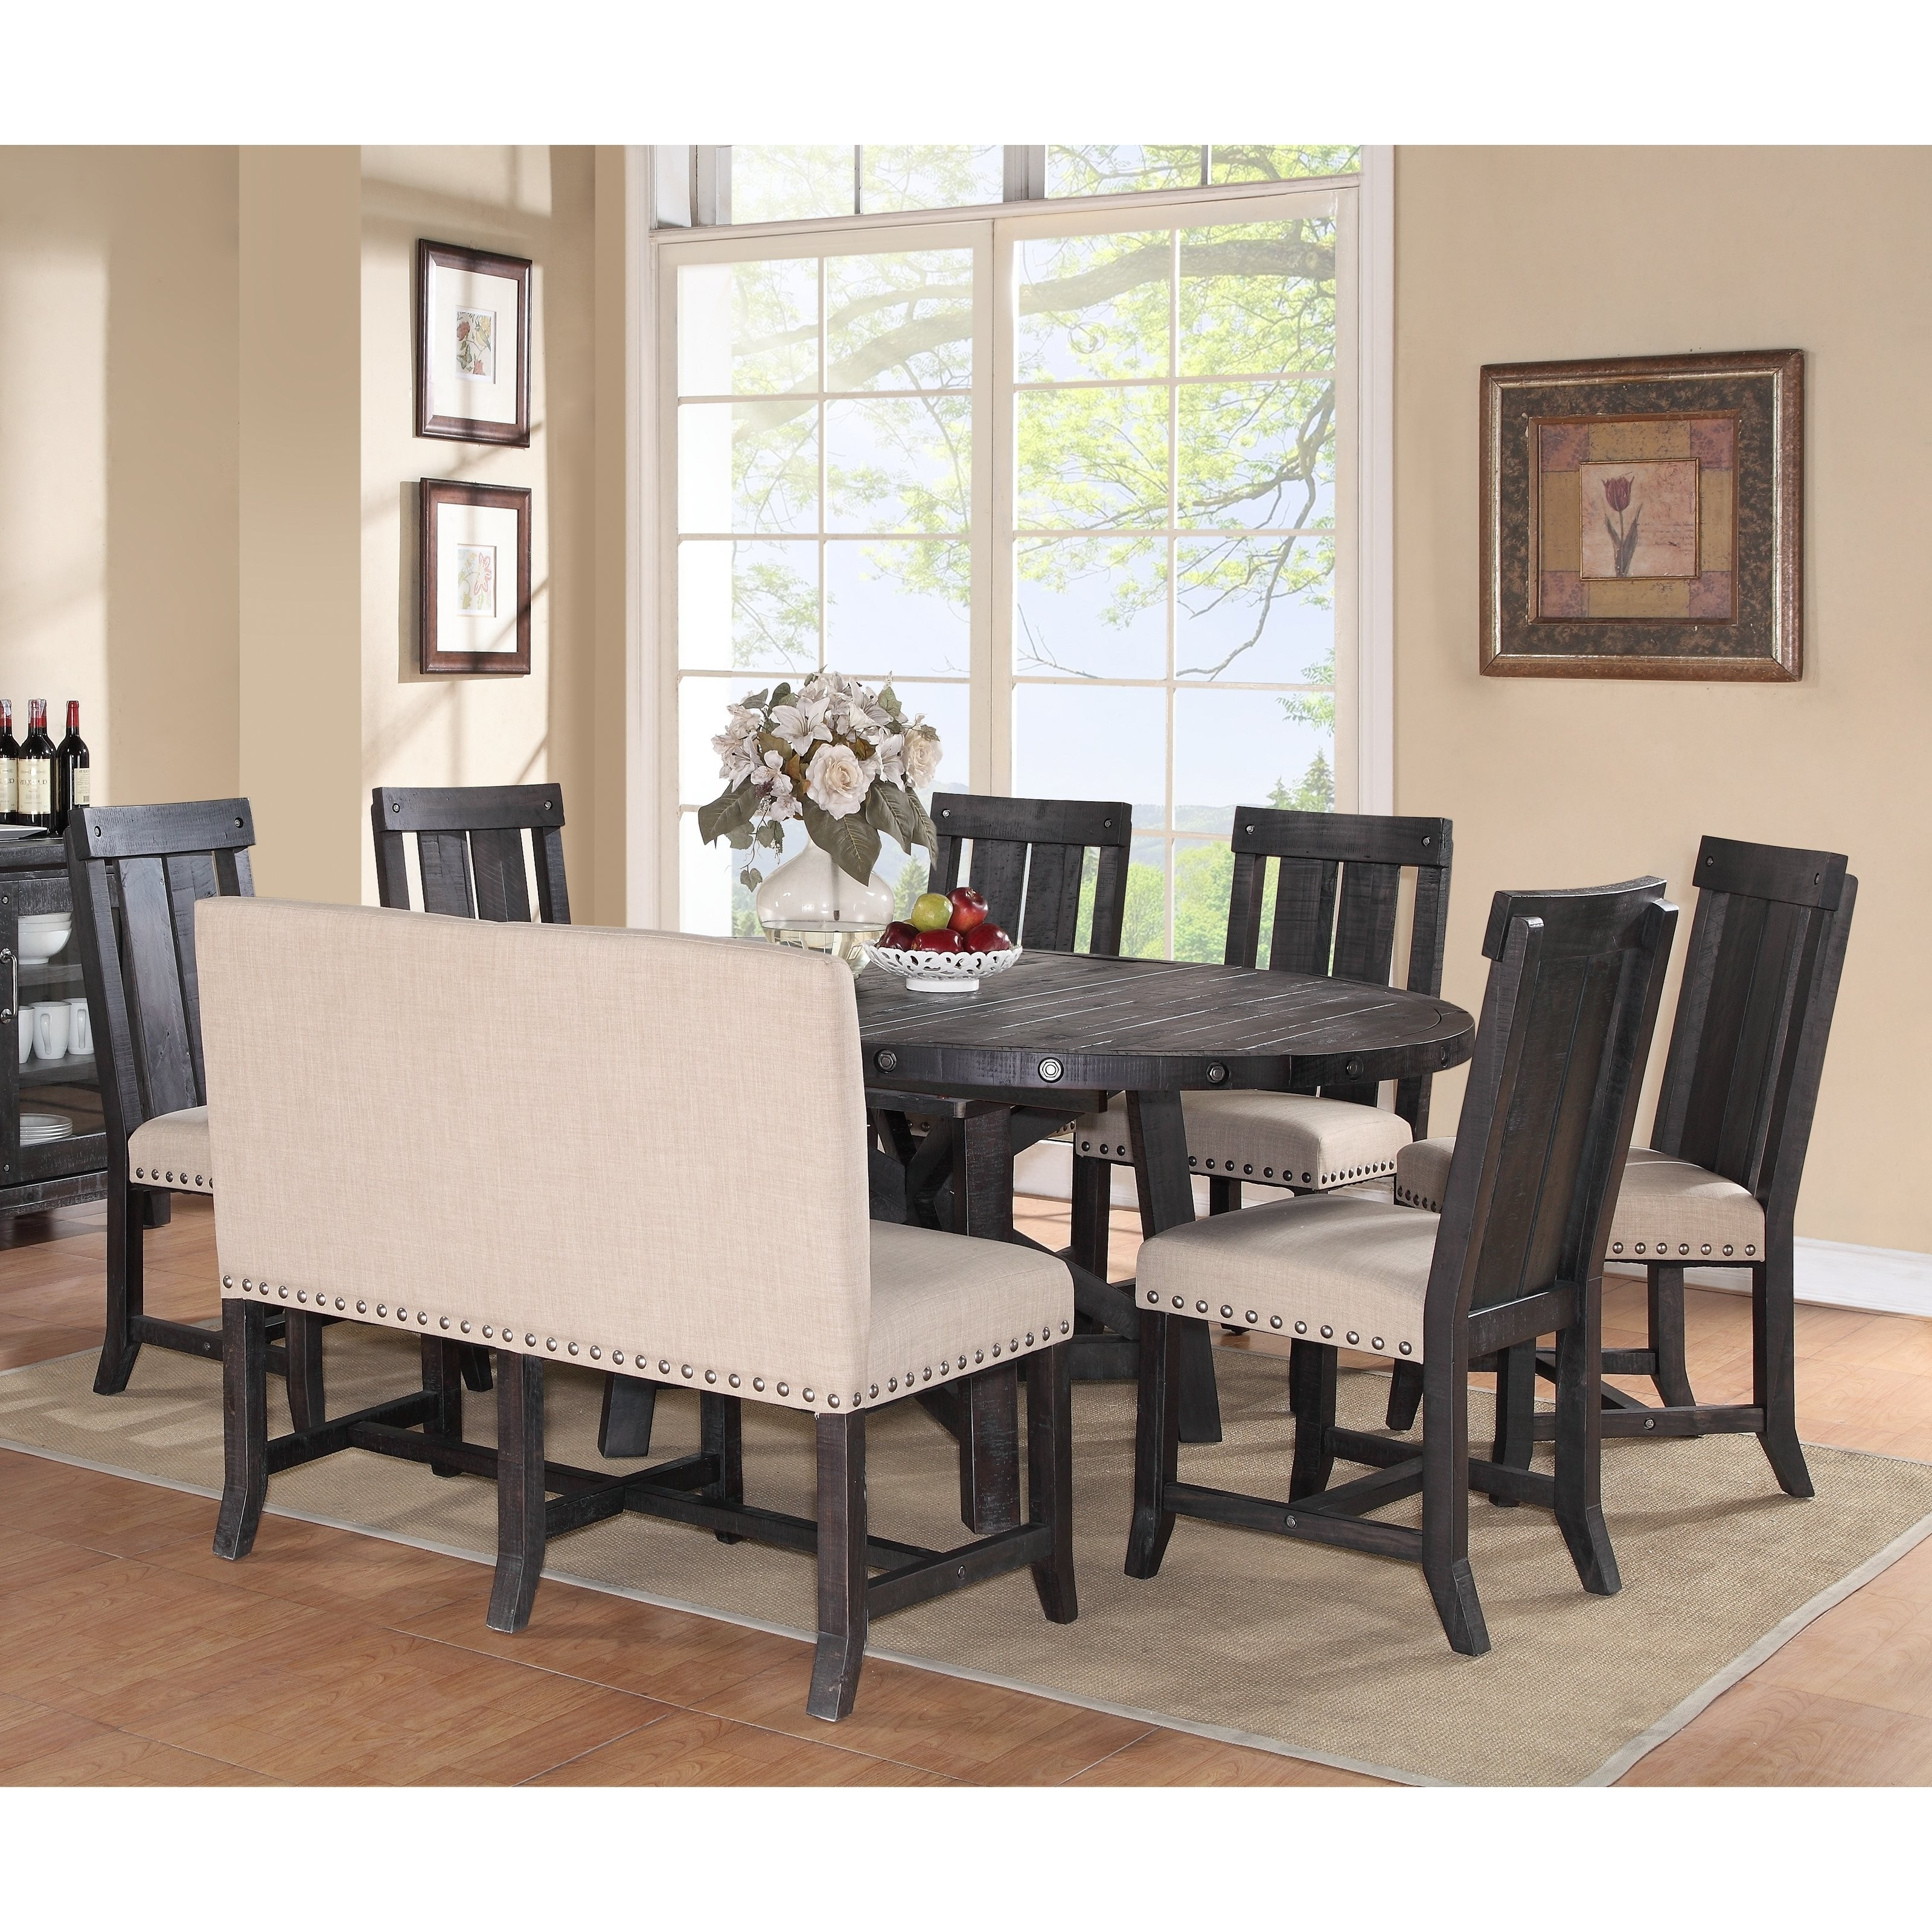 Latest Chandler 7 Piece Extension Dining Sets With Wood Side Chairs Intended For Coffee Table Dinner Table New Weston Home Two Tone 7 Piece Extension (View 15 of 25)